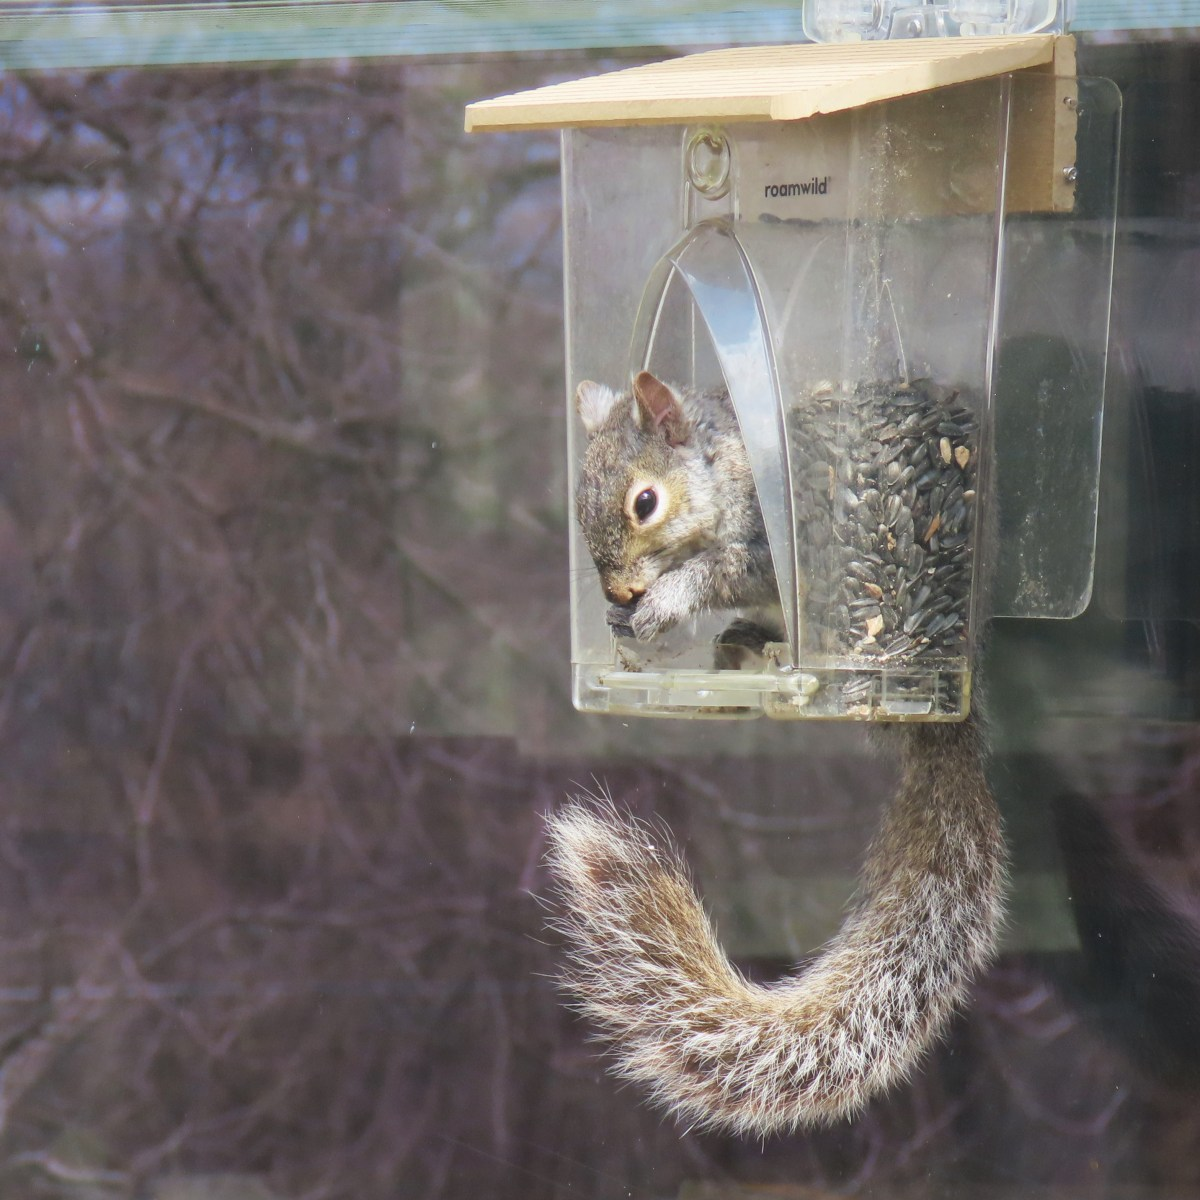 A gray squirrel eats from a window bird feeder that it climbed inside